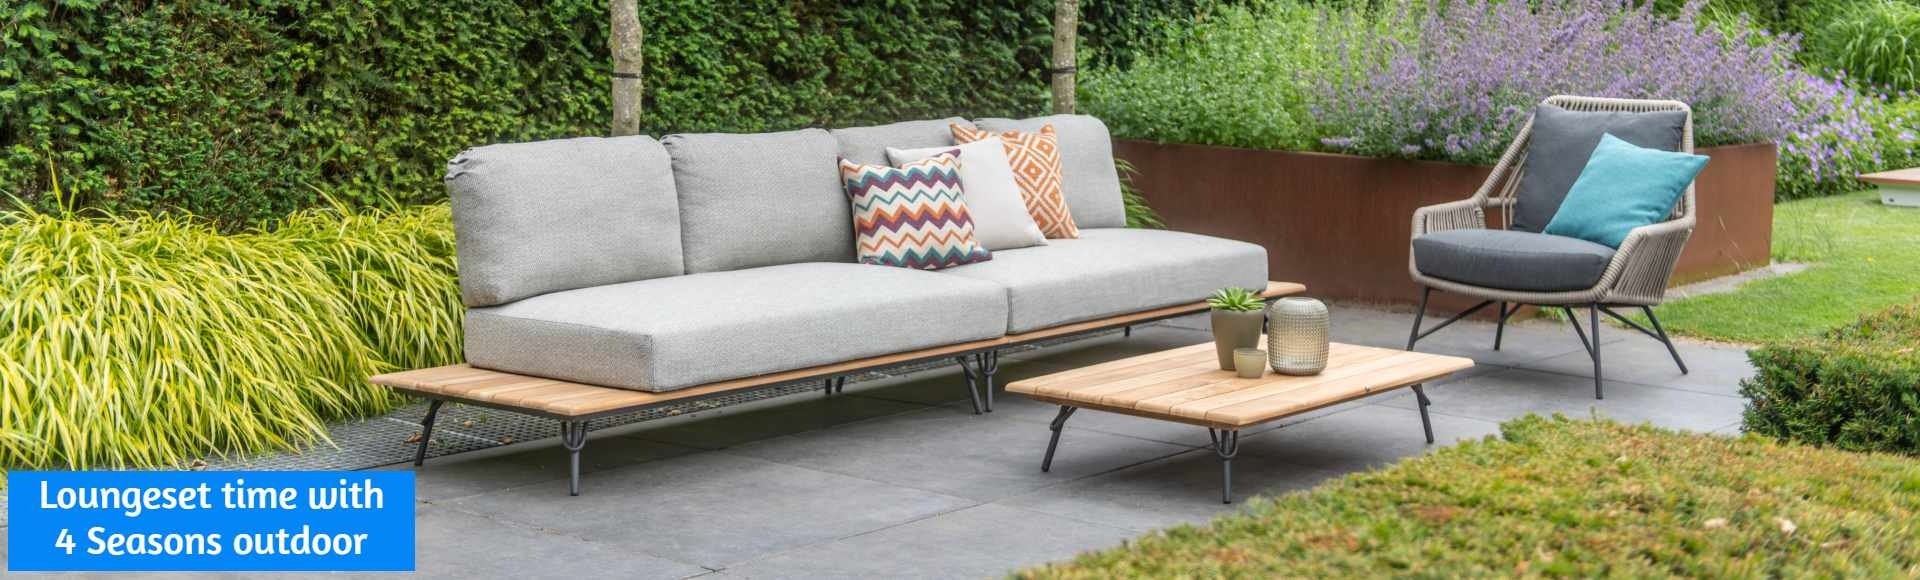 HoekVT - Specialist in outdoor furniture and springbox beds